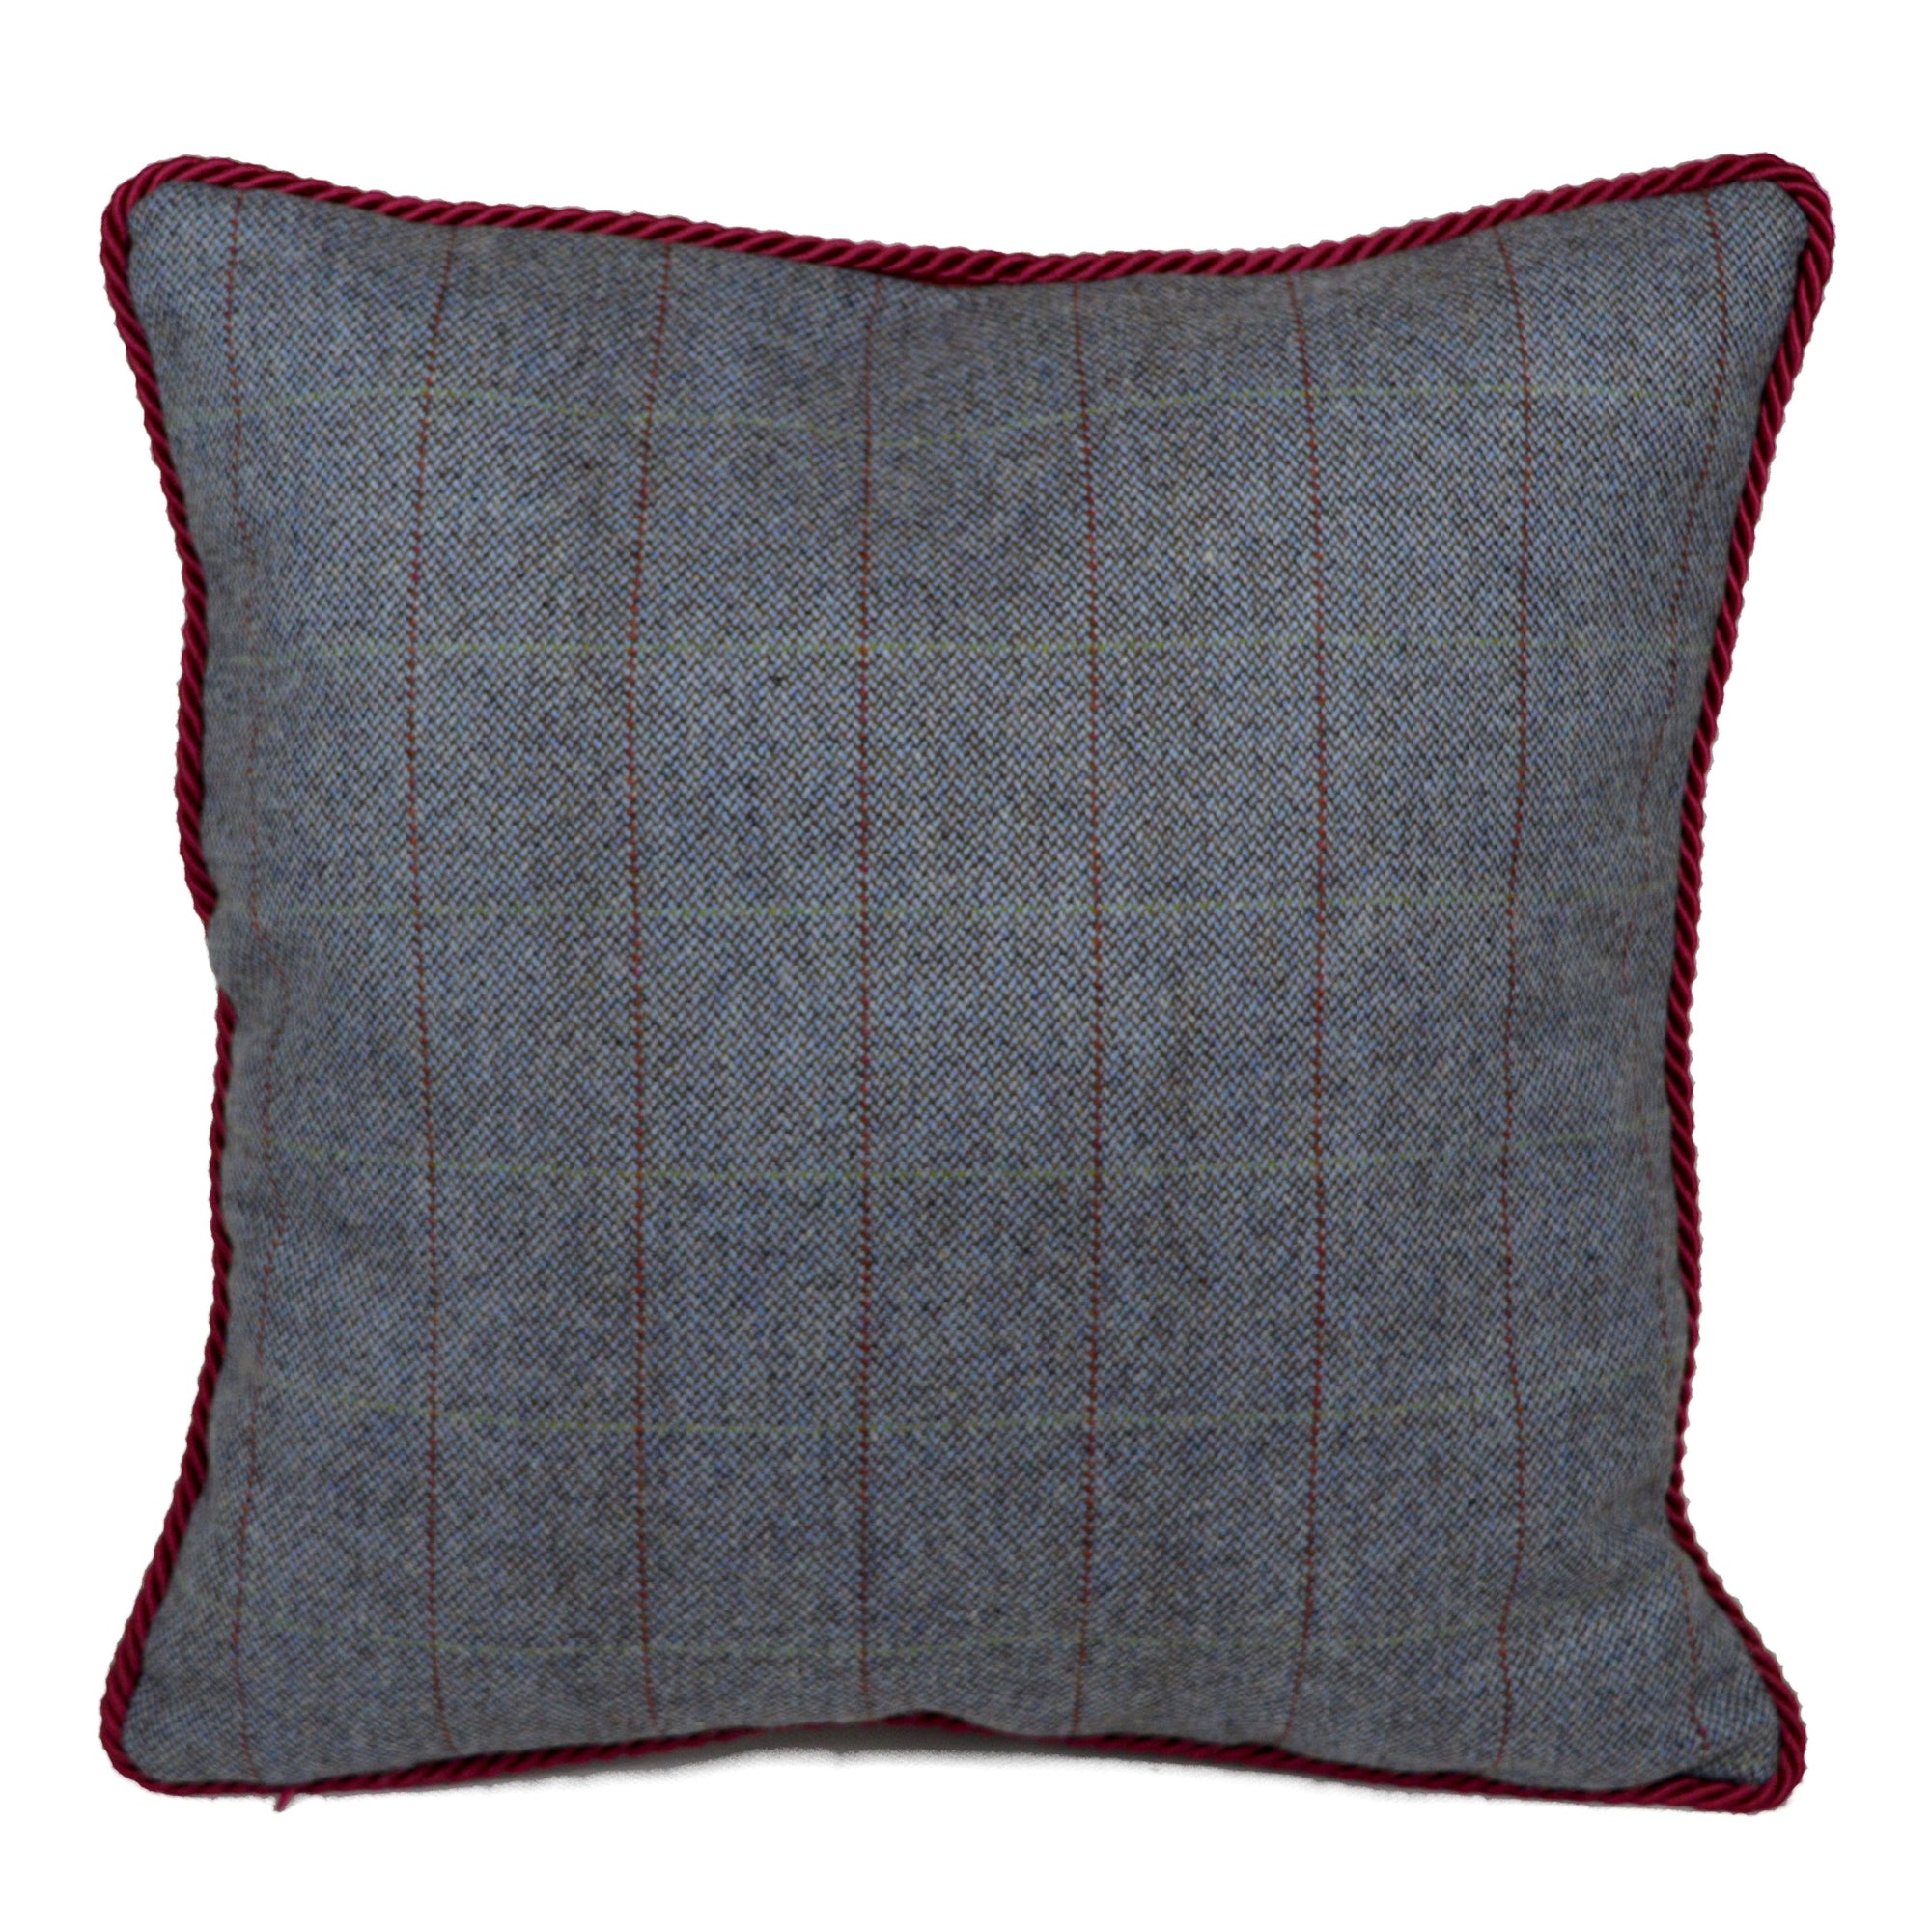 "'Home...', Irish Tweed Cushion, 16"" x 16"""